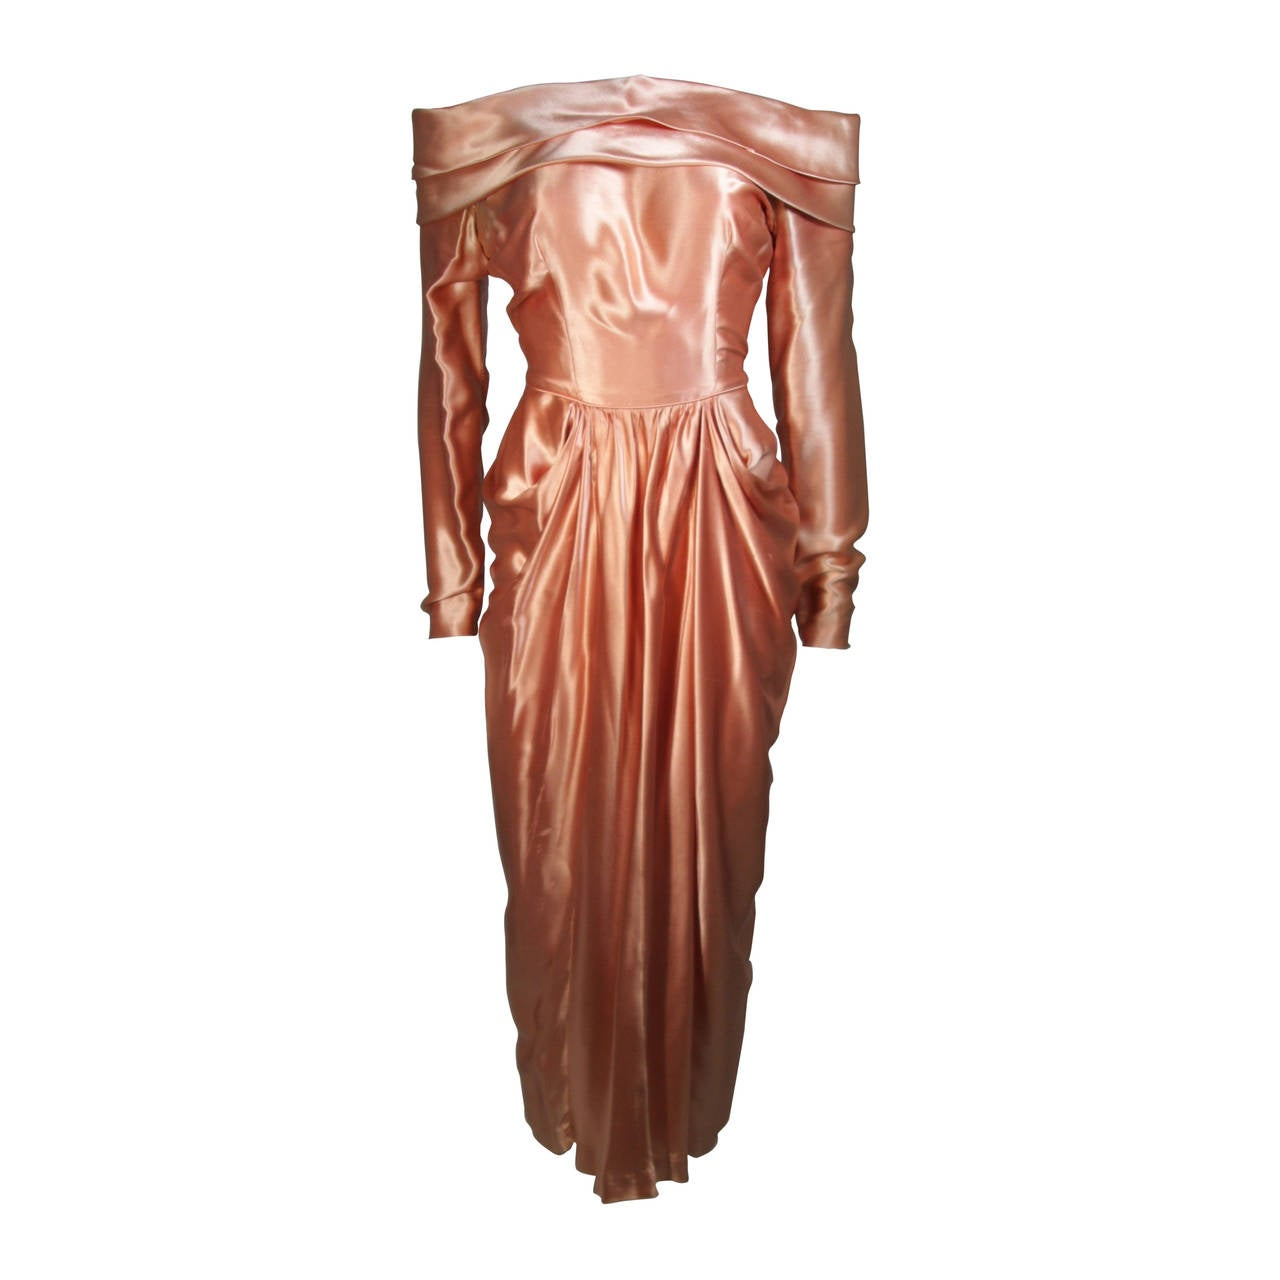 Ceil Chapman Draped Silk Gown in a Peach Champagne Hue Size 4-6 For Sale